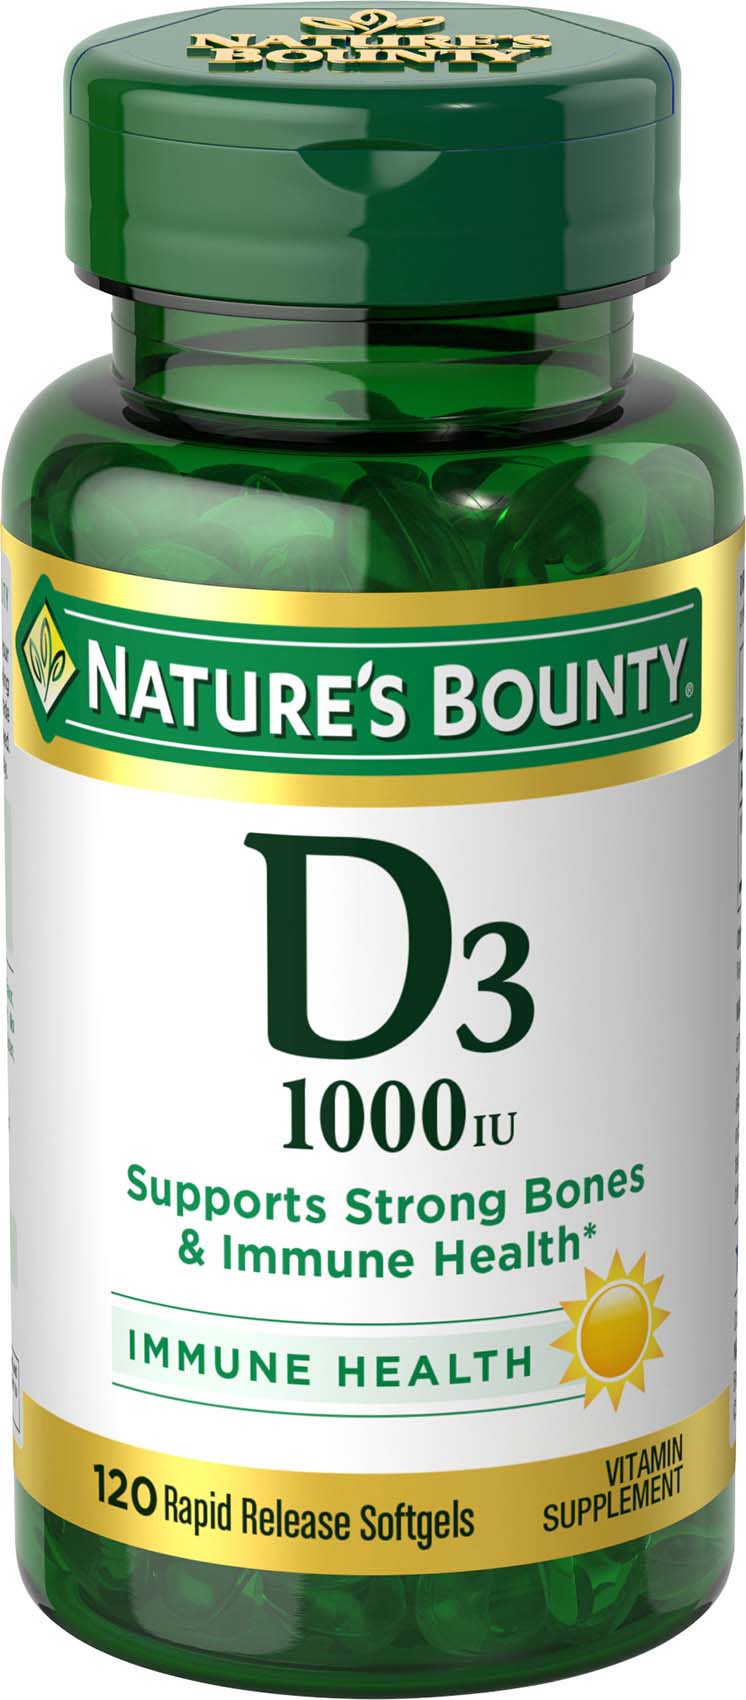 picture relating to Nature's Bounty Coupon Printable $5 known as Vitamin D -